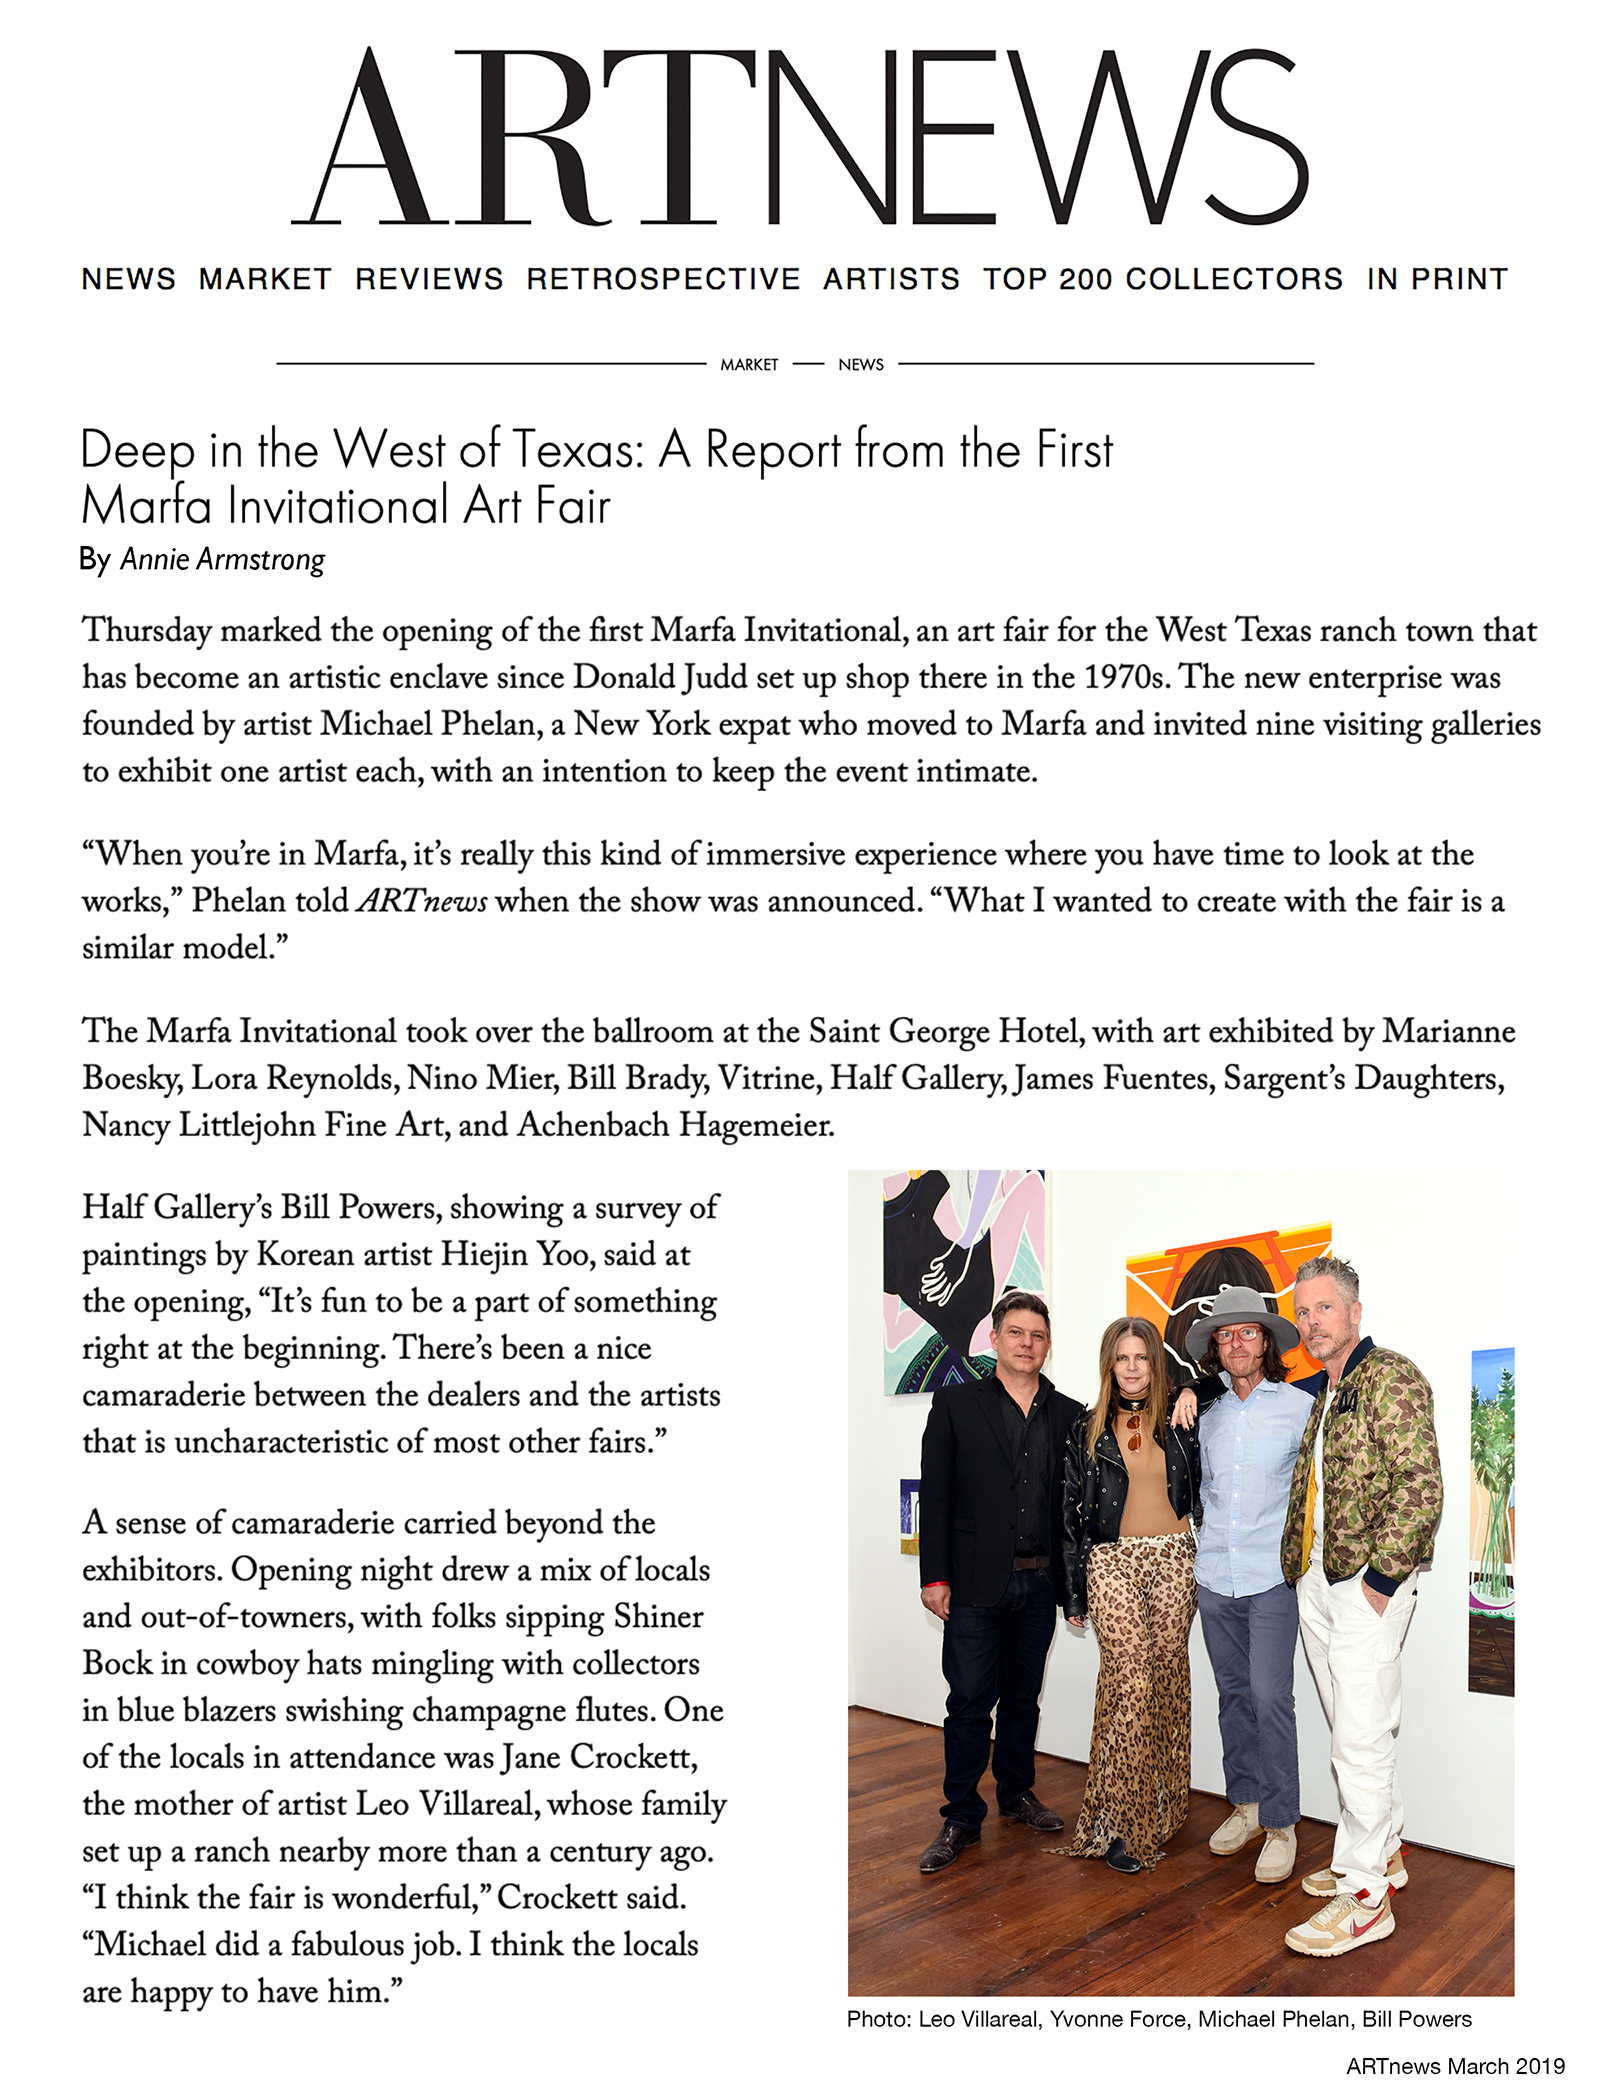 ARTnews-Deep in the West of Texas- A Report from the First Marfa Invitational Art Fair-April 5- 2019-Annie Armstrong-P1.jpg